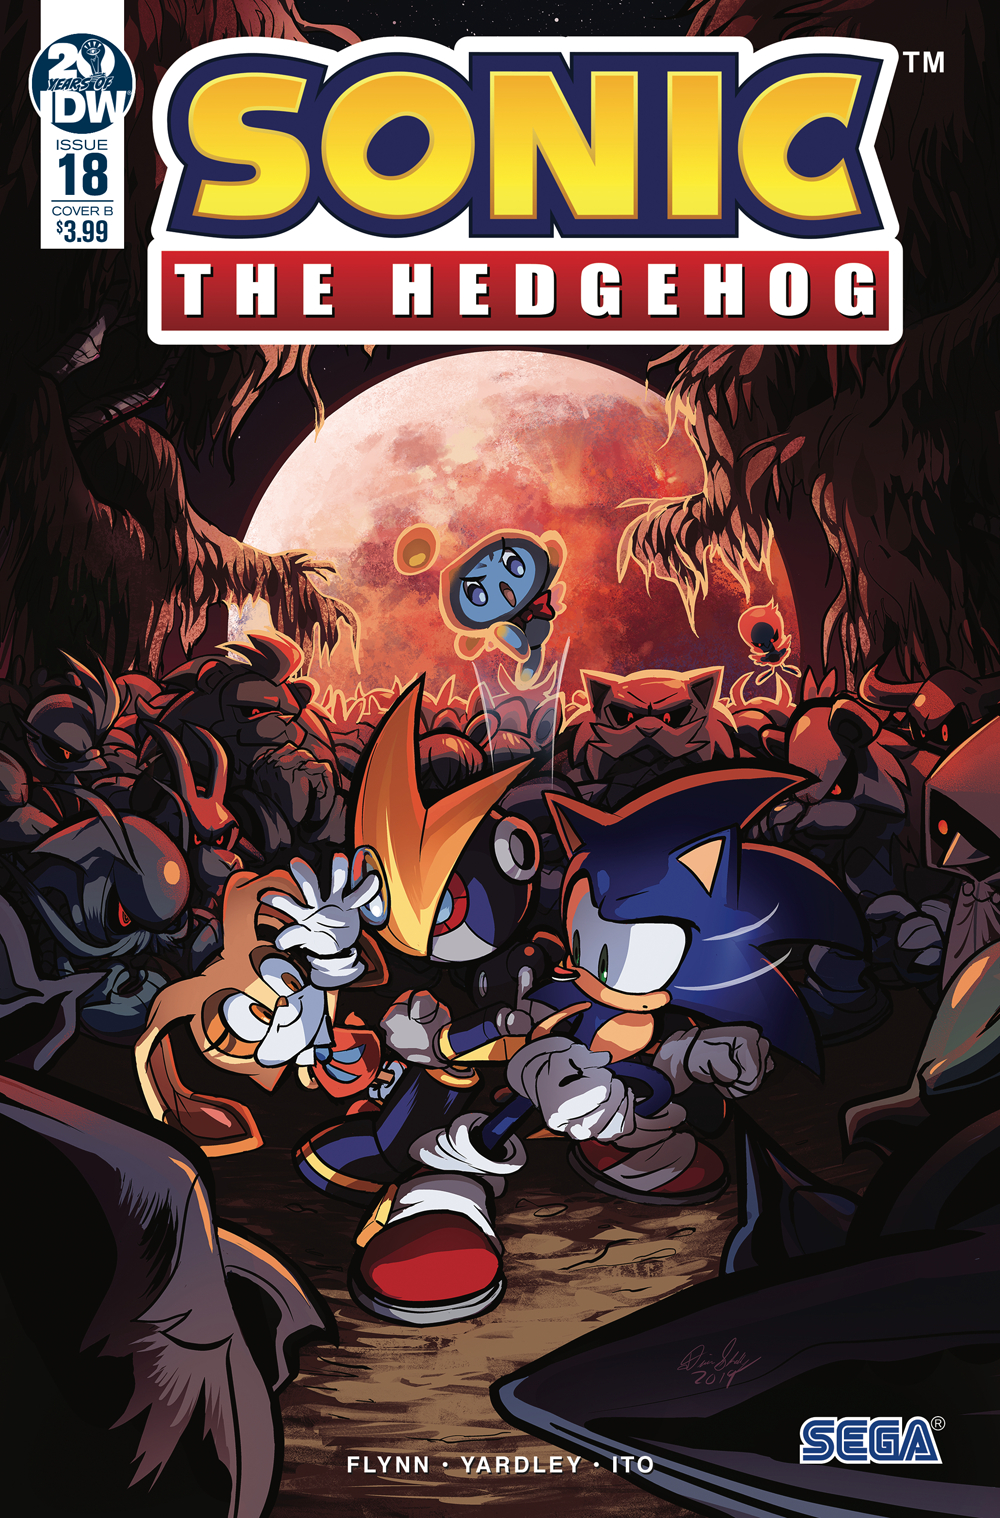 SONIC THE HEDGEHOG #18 CVR B SKELLY